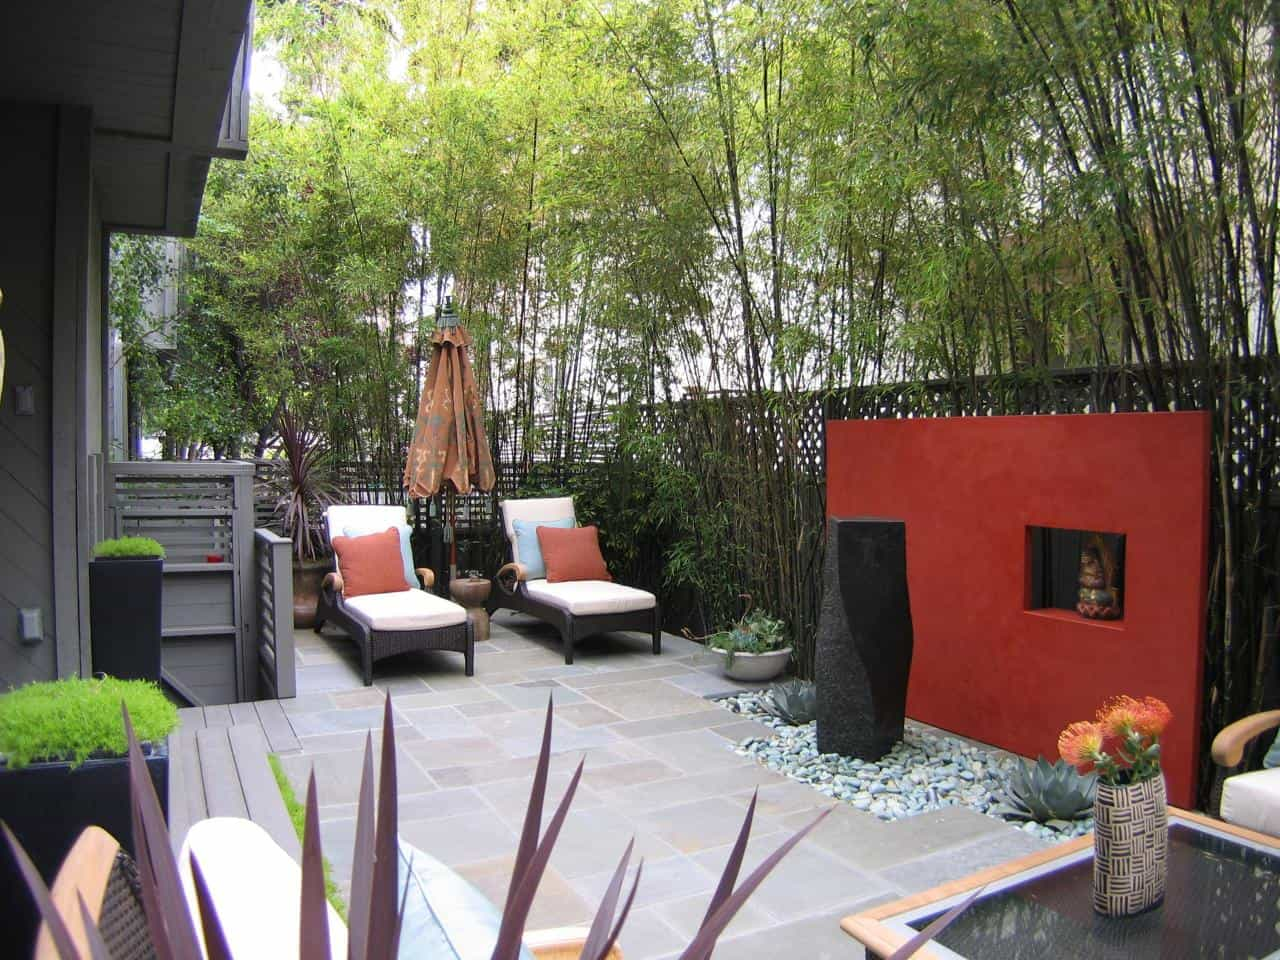 An accent wall can add privacy which is always great when you are working with an outdoor space.